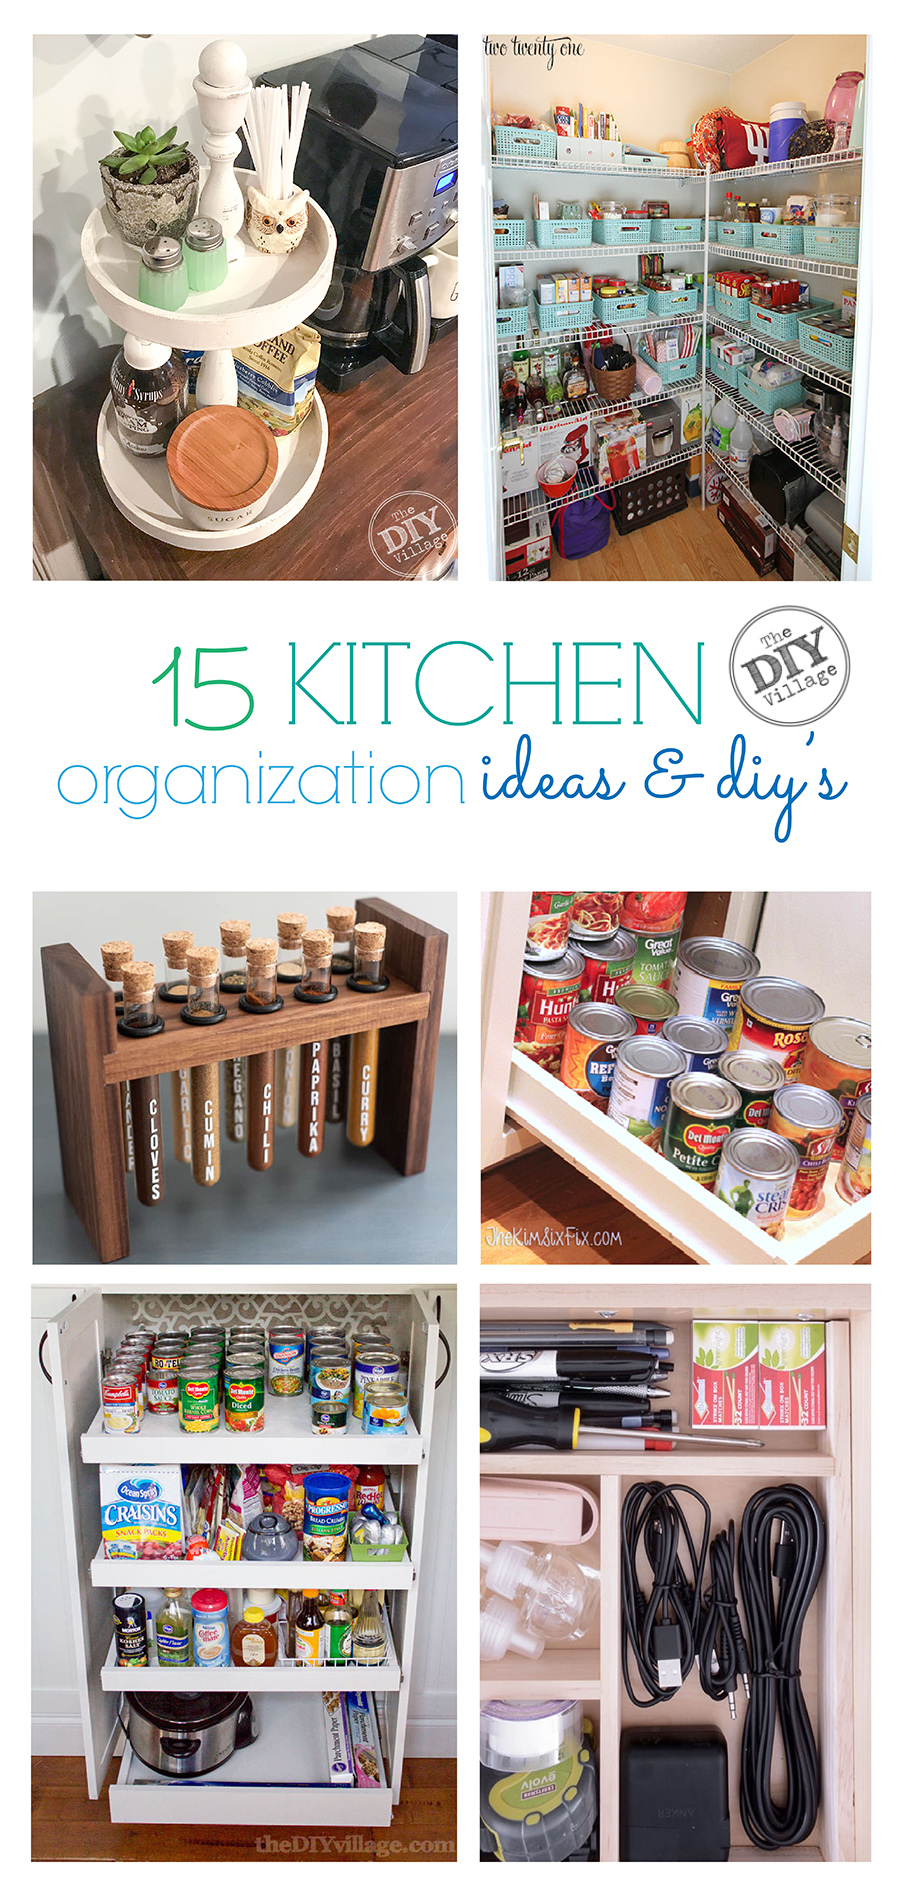 15 kitchen organization diy's and ideas. Perfect for getting everything organized.  #kitchen #organization #organizedhome #kitchenideas #kitchendiys #homediys